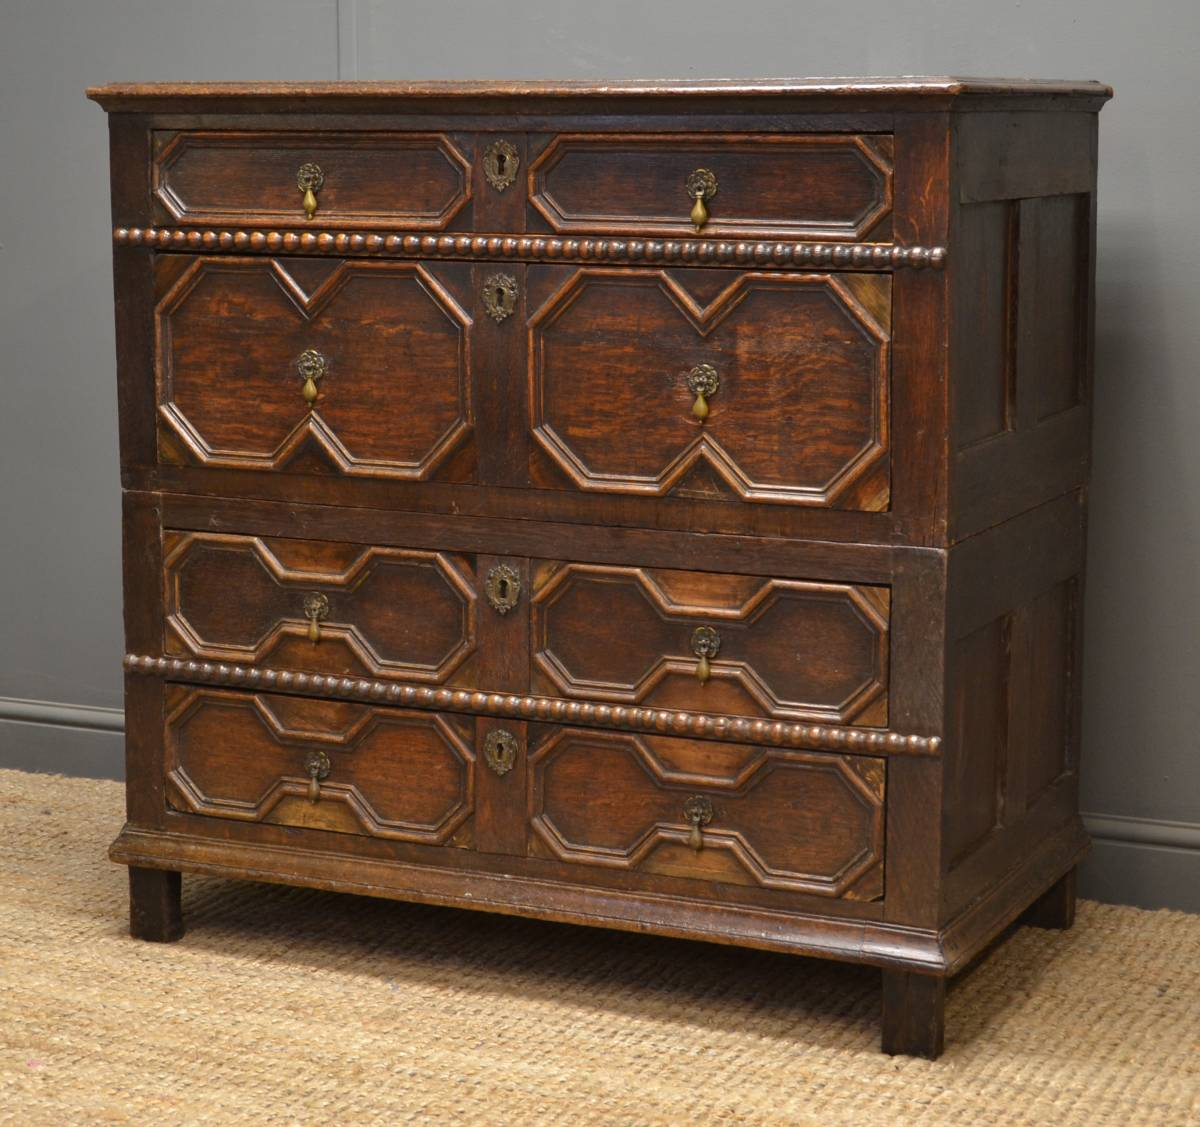 Early 18thCentury Period Oak Antique Chest.